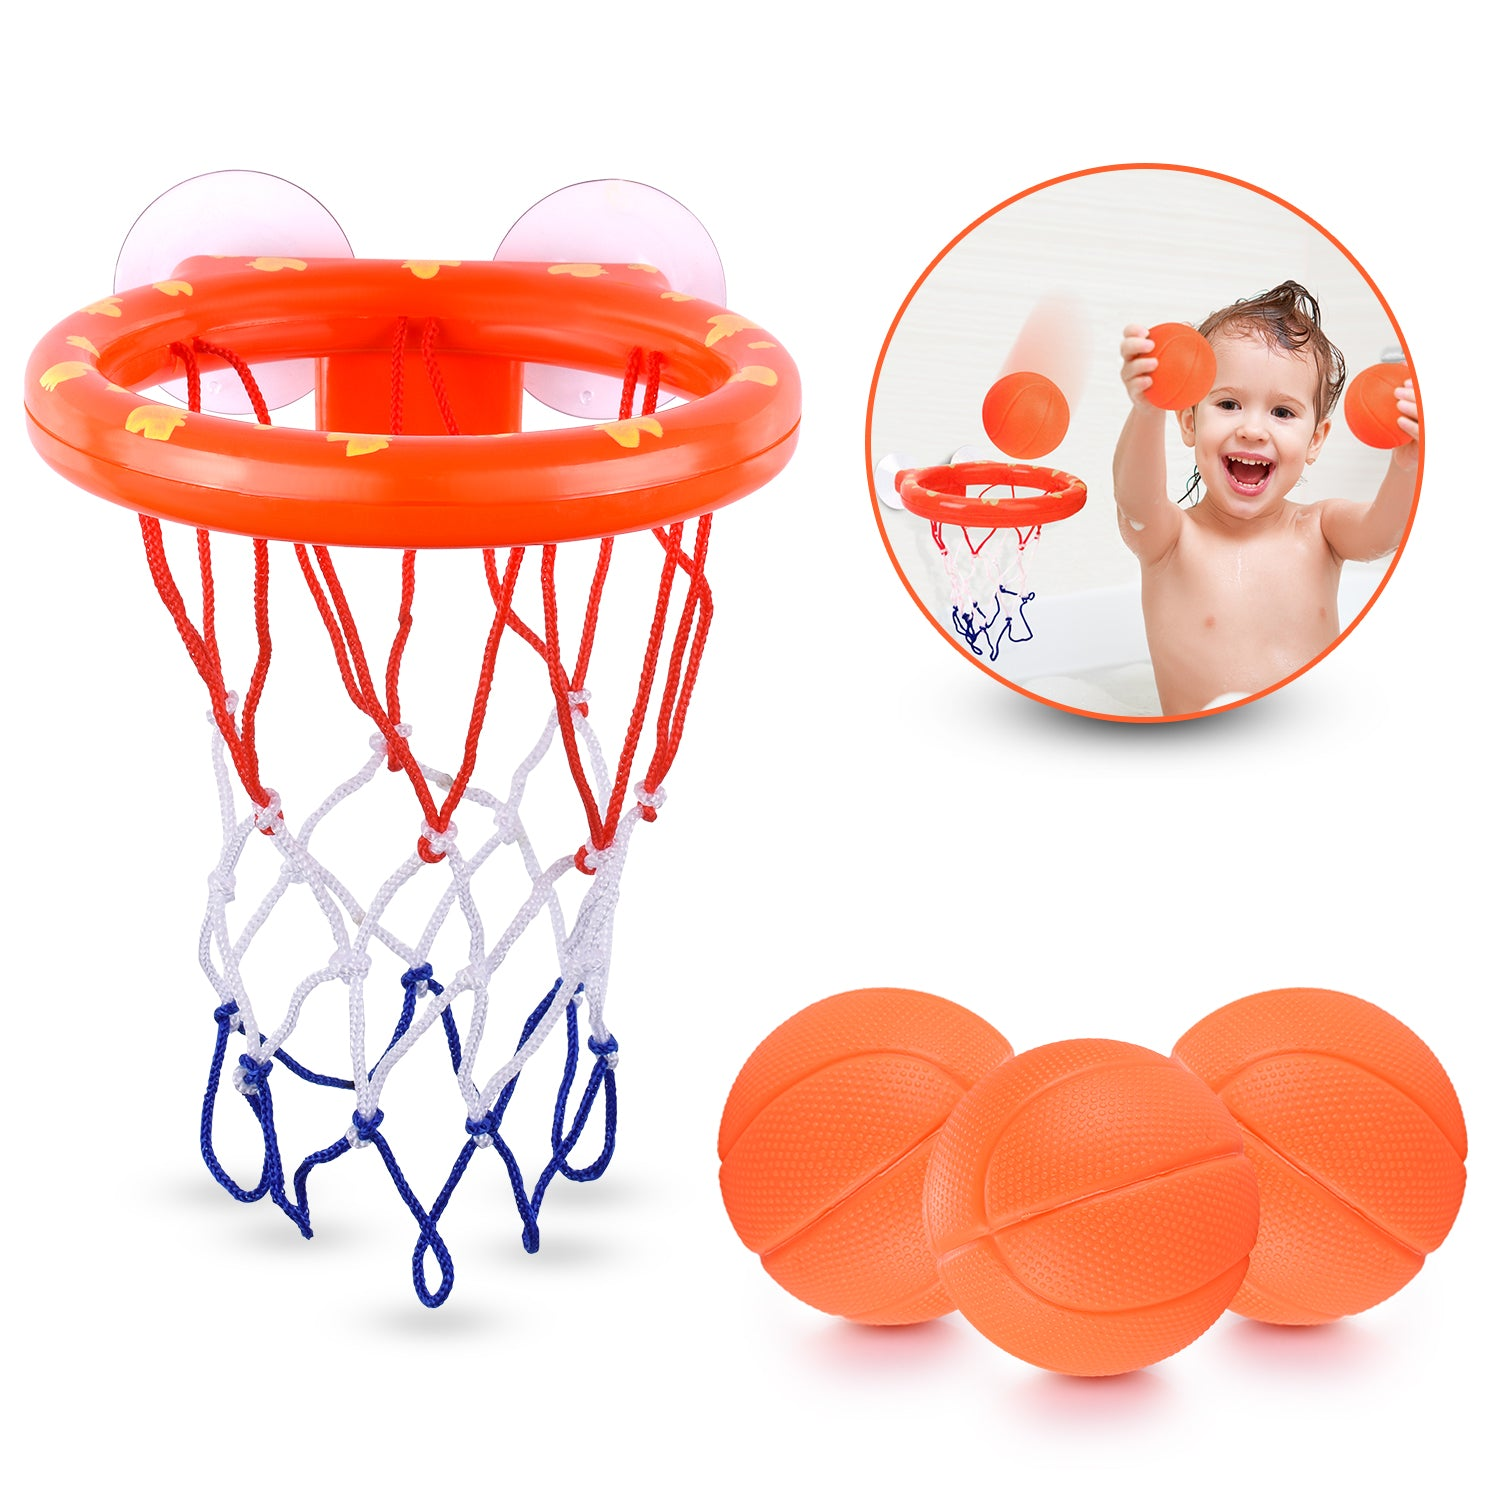 Fun Basketball Hoop & Balls Playset for Little Boys & Girls | Bathtub Shooting Game for Kids & Toddlers | Suctions Cups That Stick to Any Flat Surface + 3 Balls Included